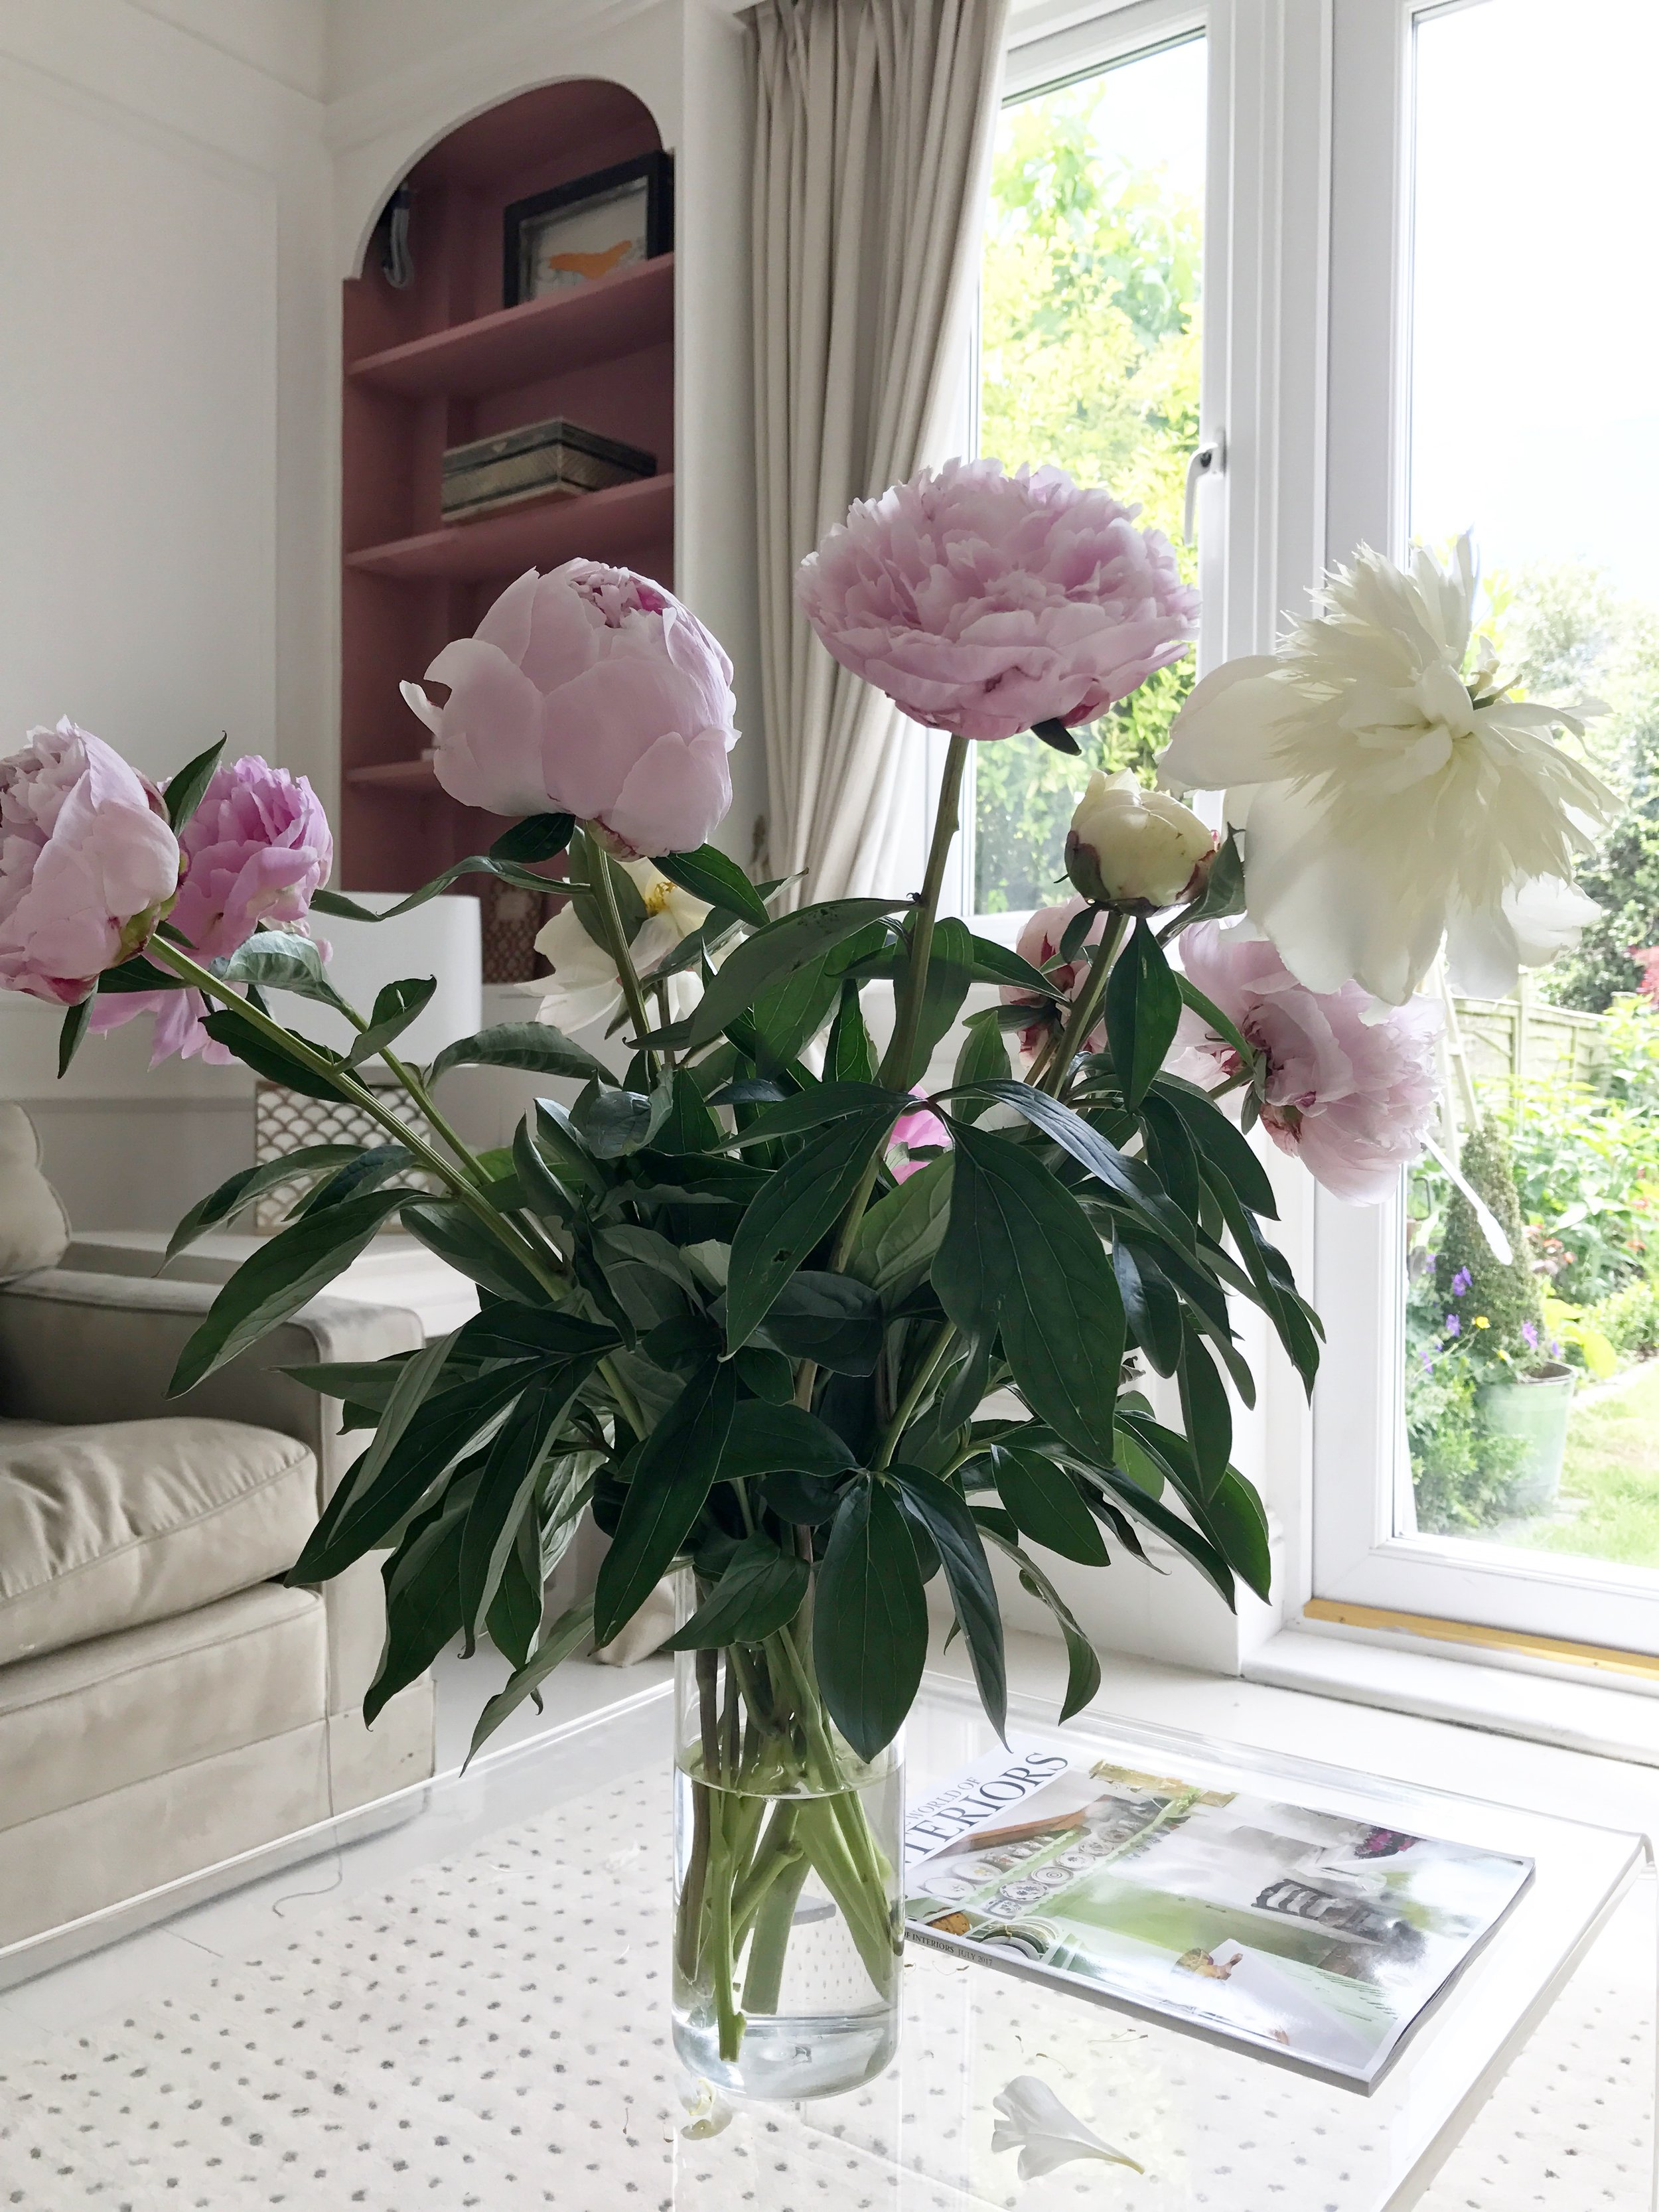 Camilla Pearl arranging flowers at home with Freddies Flowers.